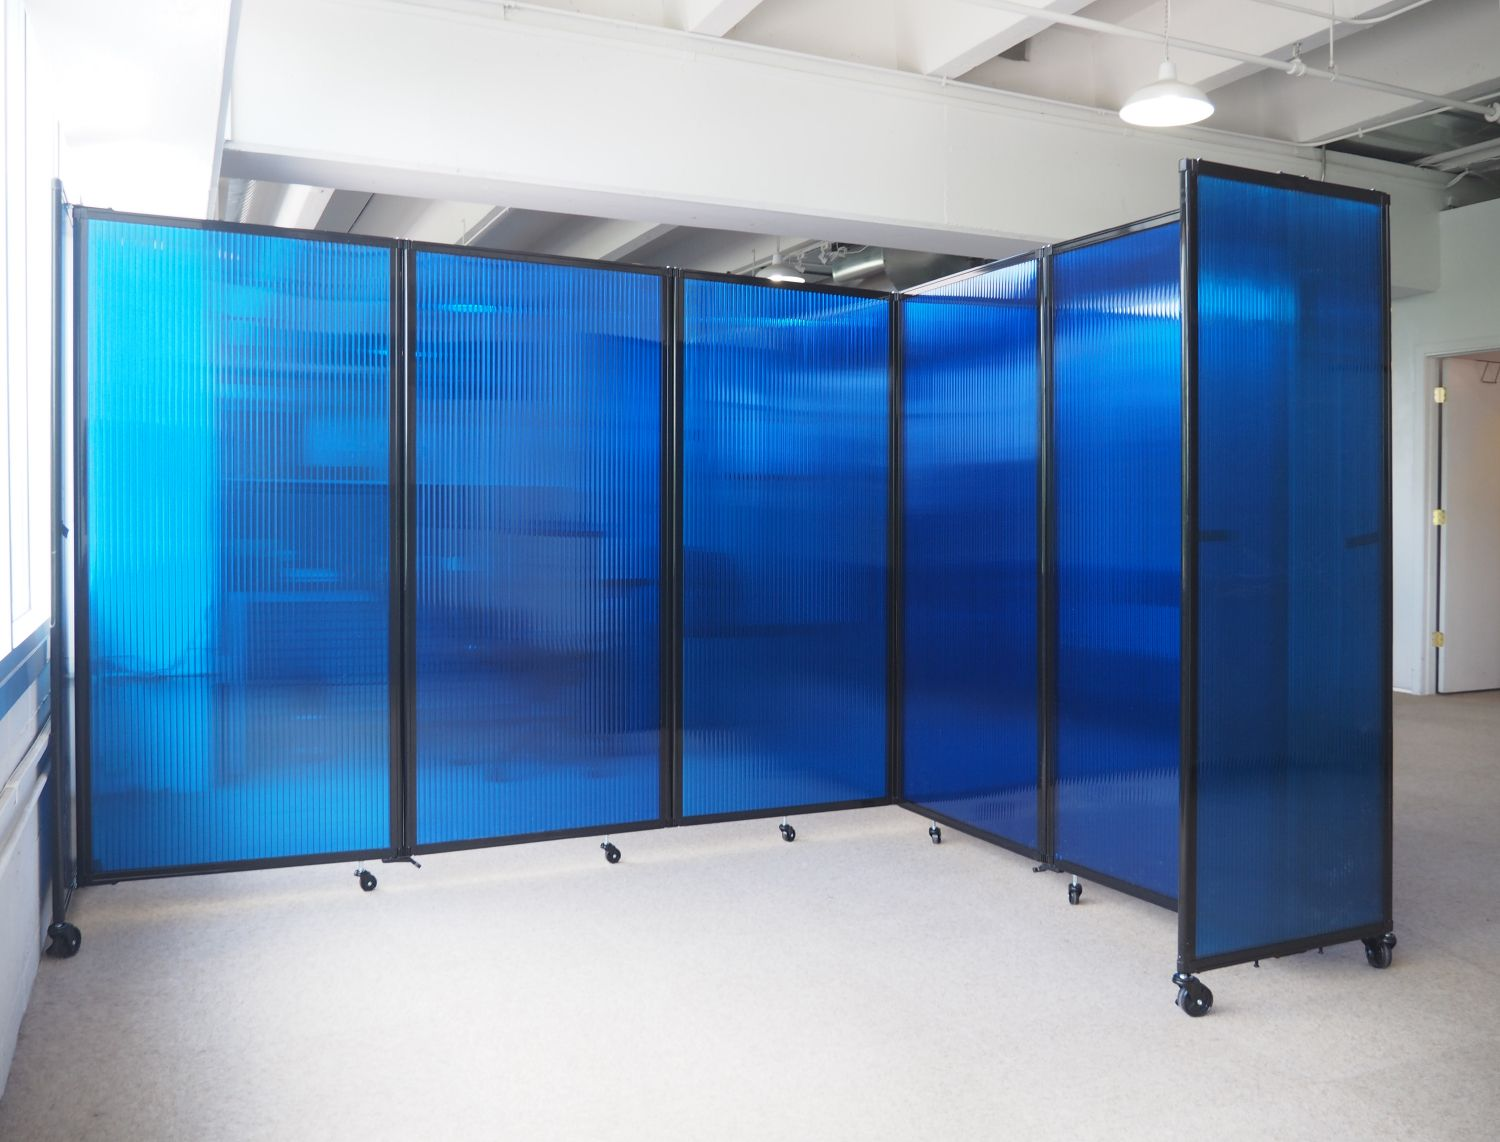 Let the light shine in using our polycarbonate room dividers ...